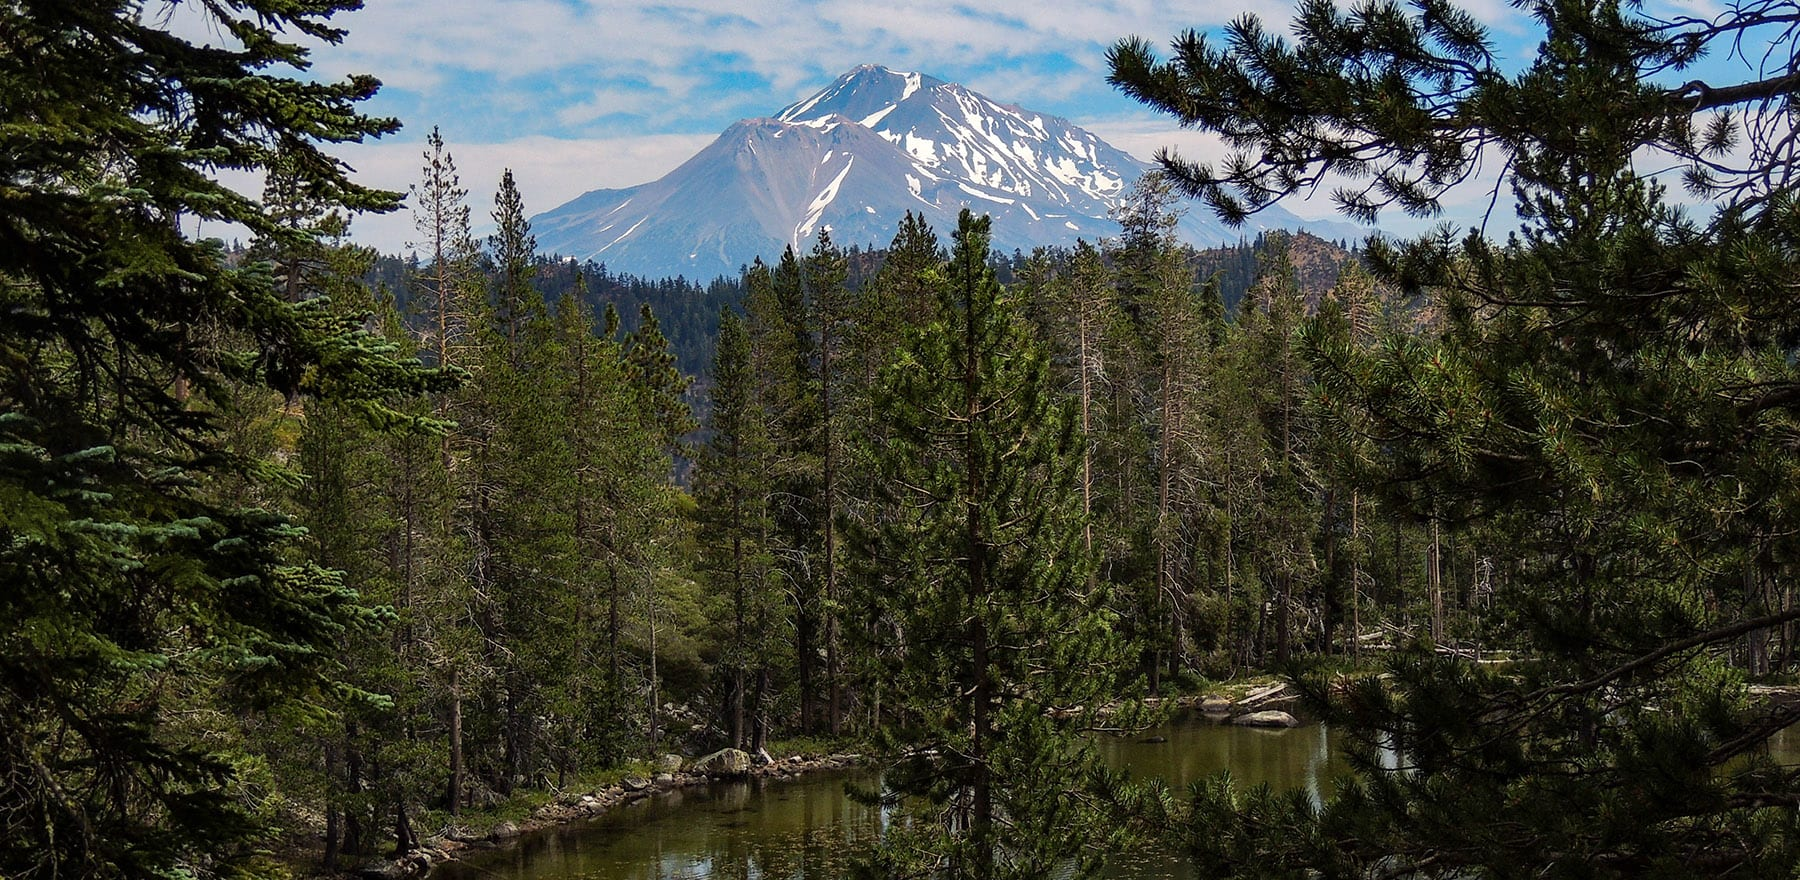 Lower Caldwell Lake and Mt Shasta